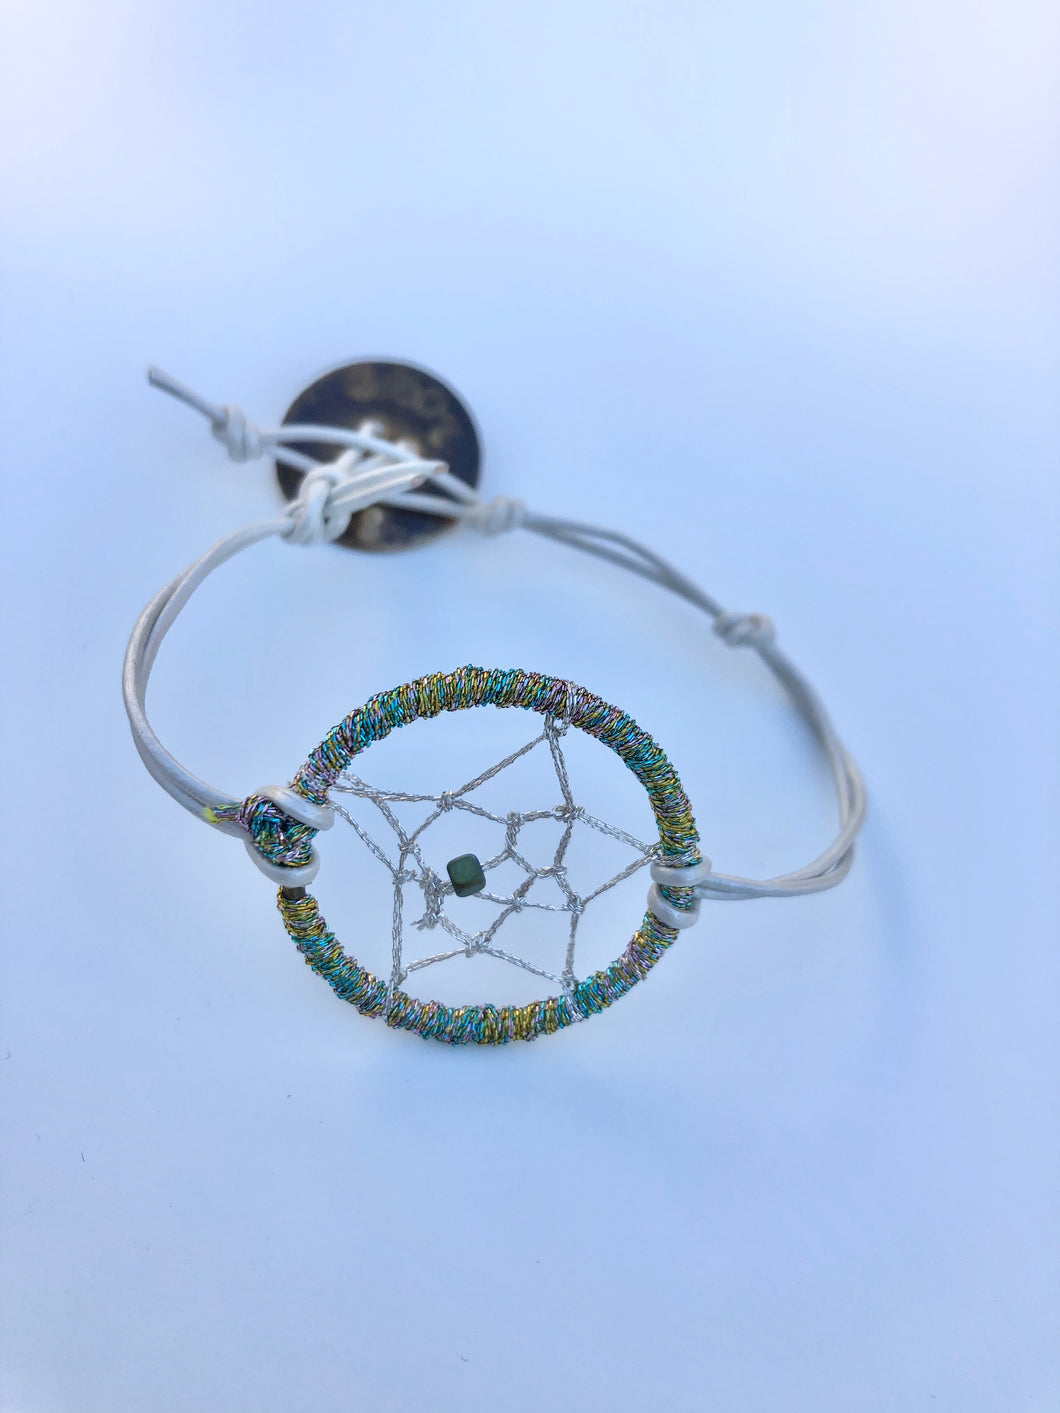 Dream Catcher Bracelet Small with White Leather